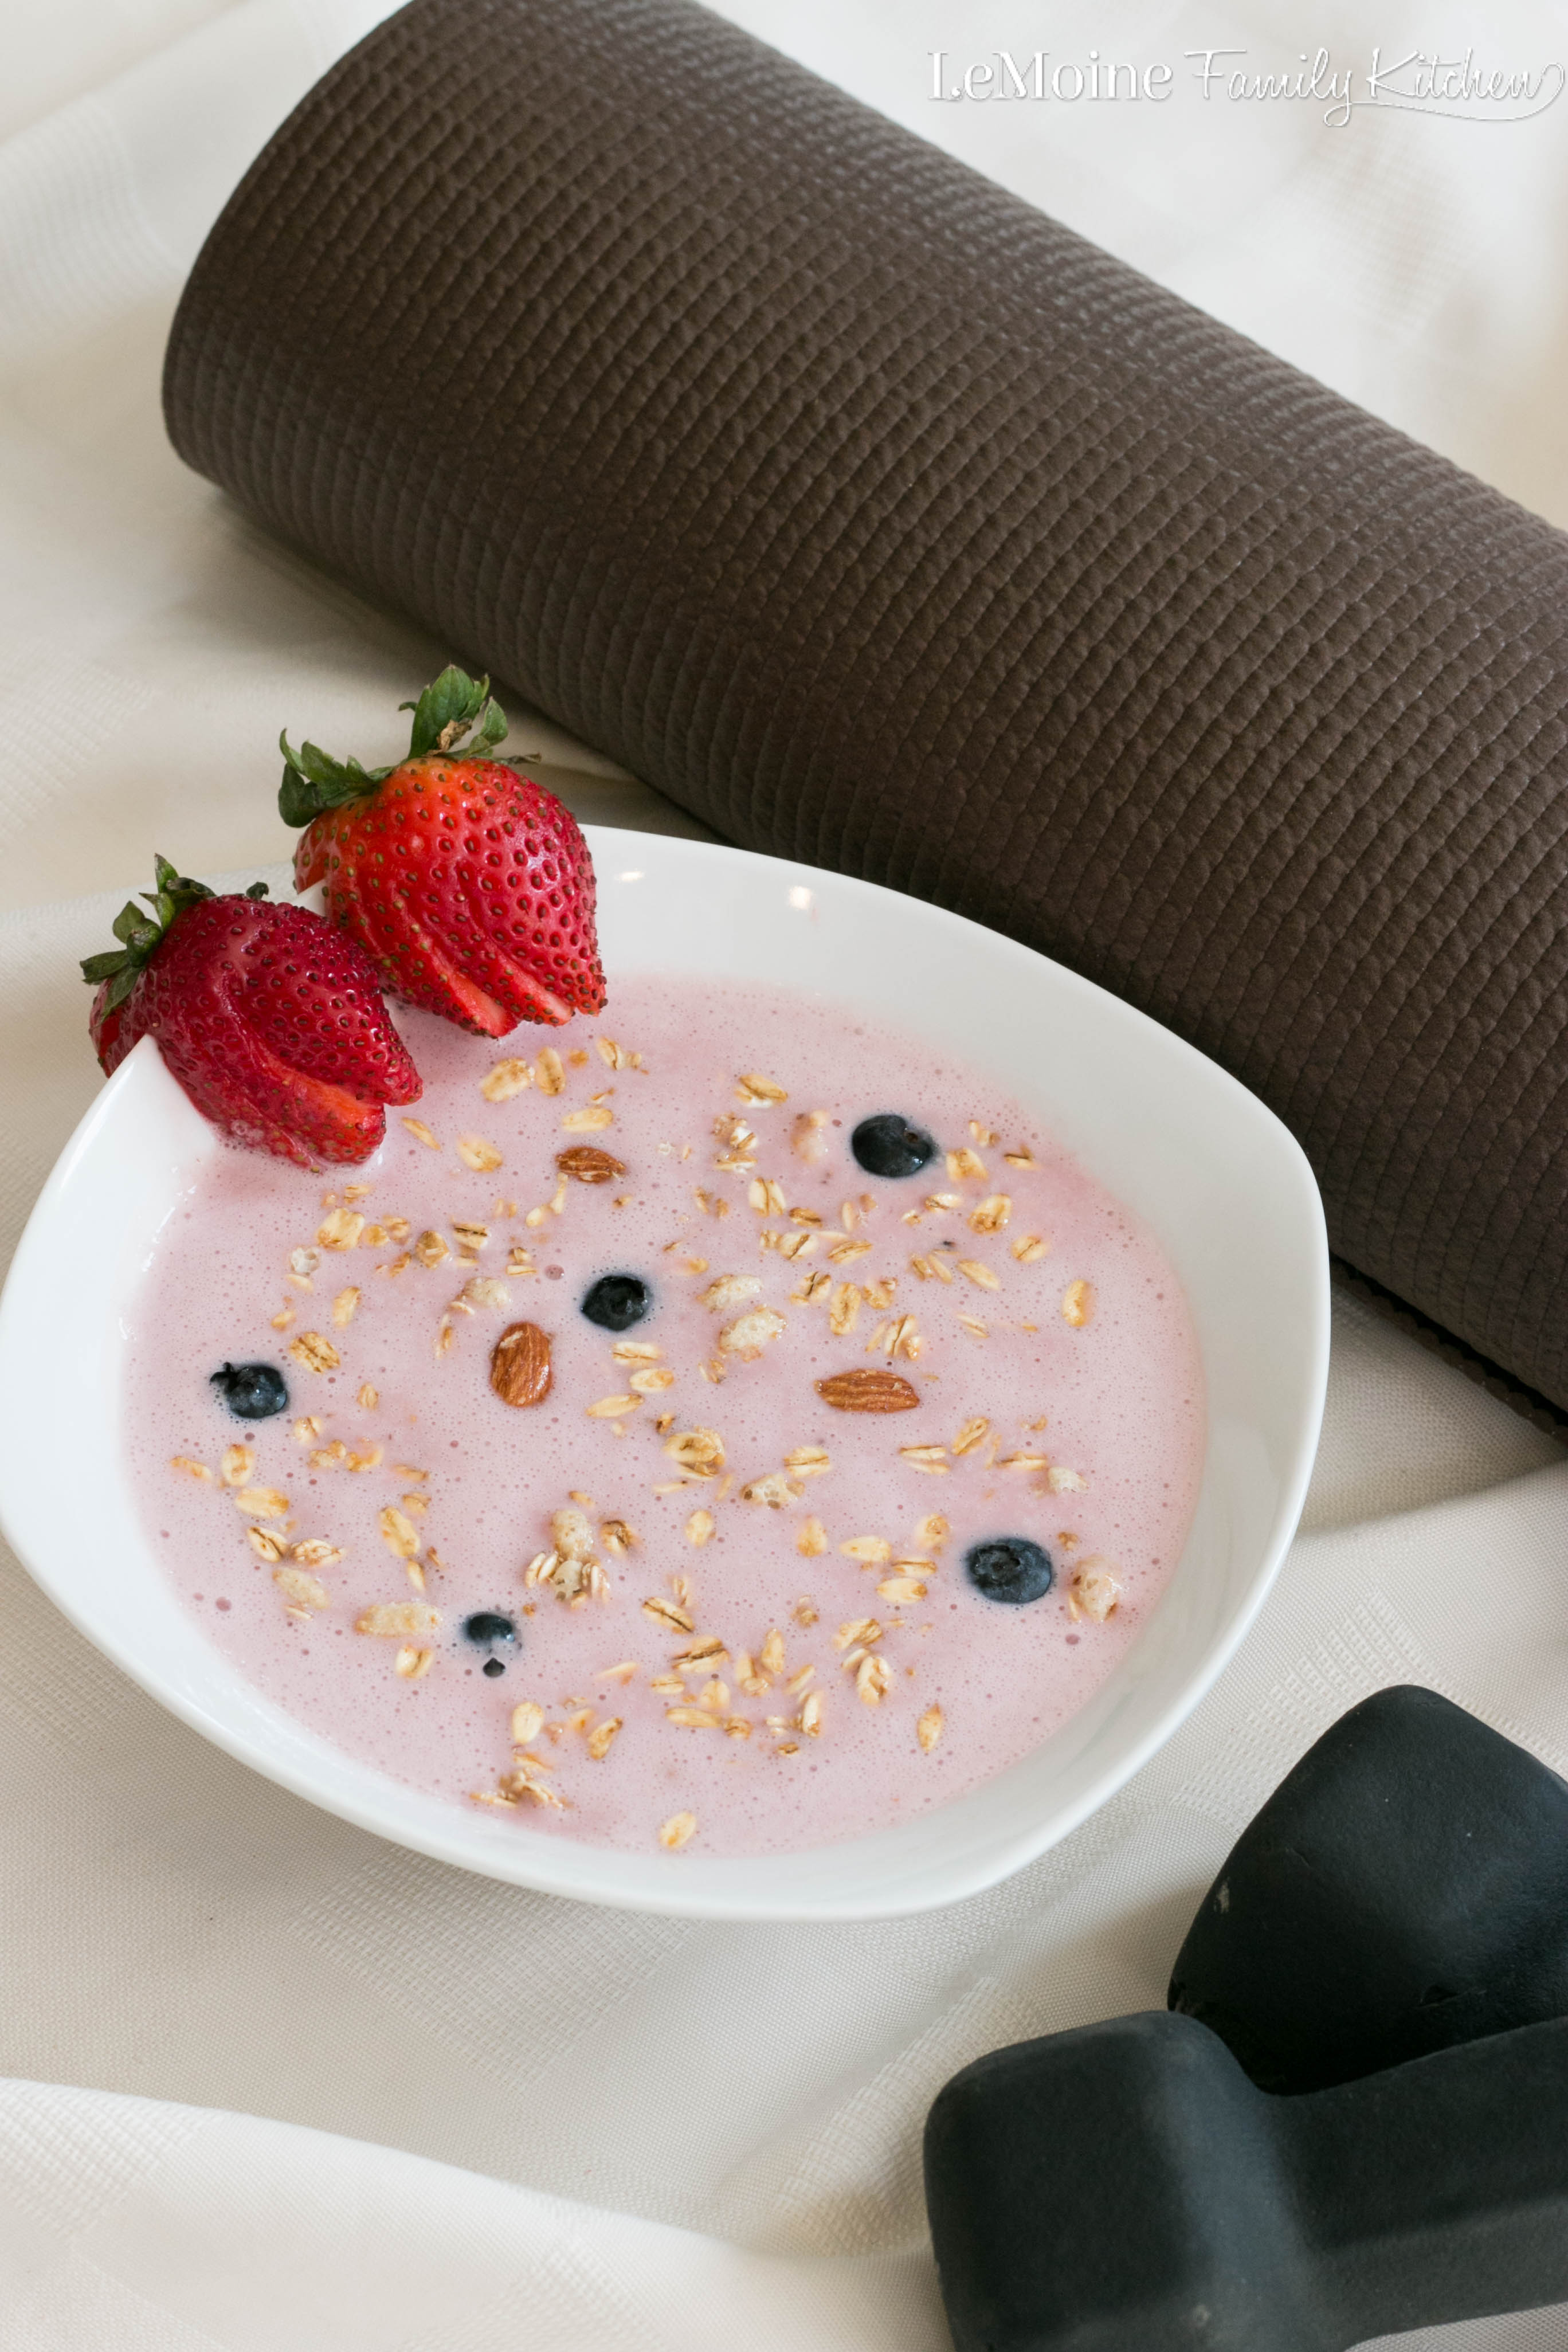 Berry Power Smoothie Bowl. Start your morning off with this healthy smoothie bowl PLUS healthy on the go snacks to keep you satisfied all day. #ad #V8Mornings